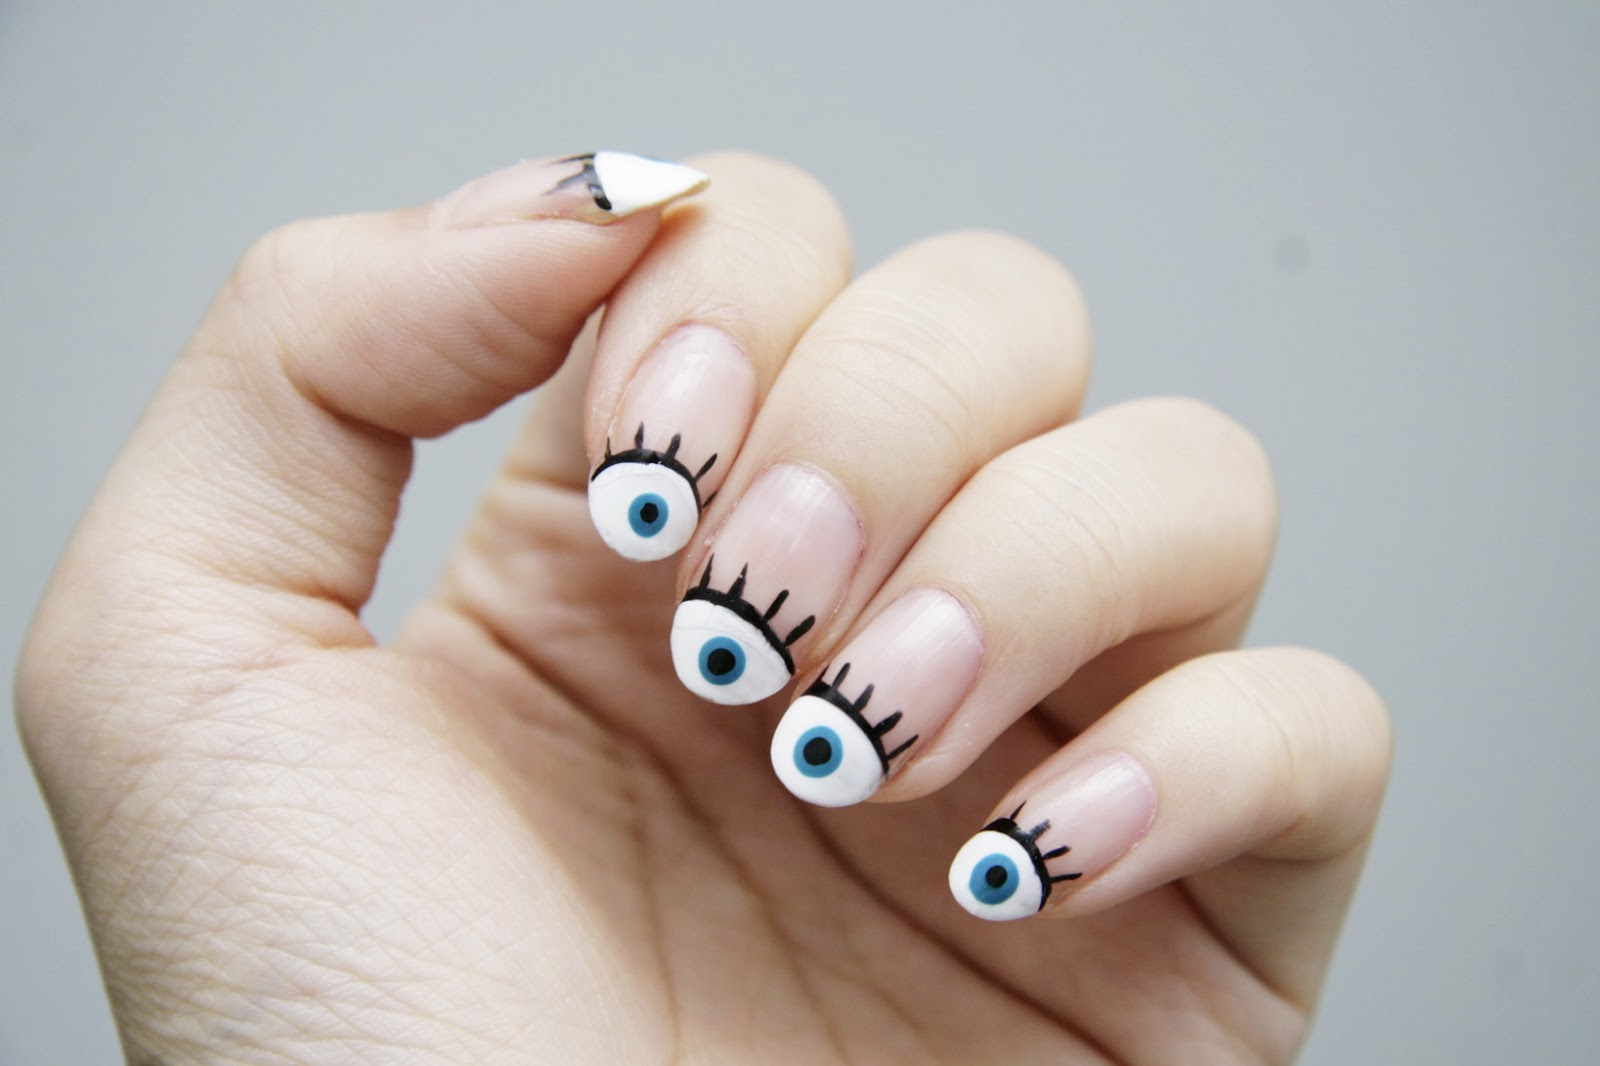 fun size beauty: #HALLOWEEN - Evil Eye Nail Art